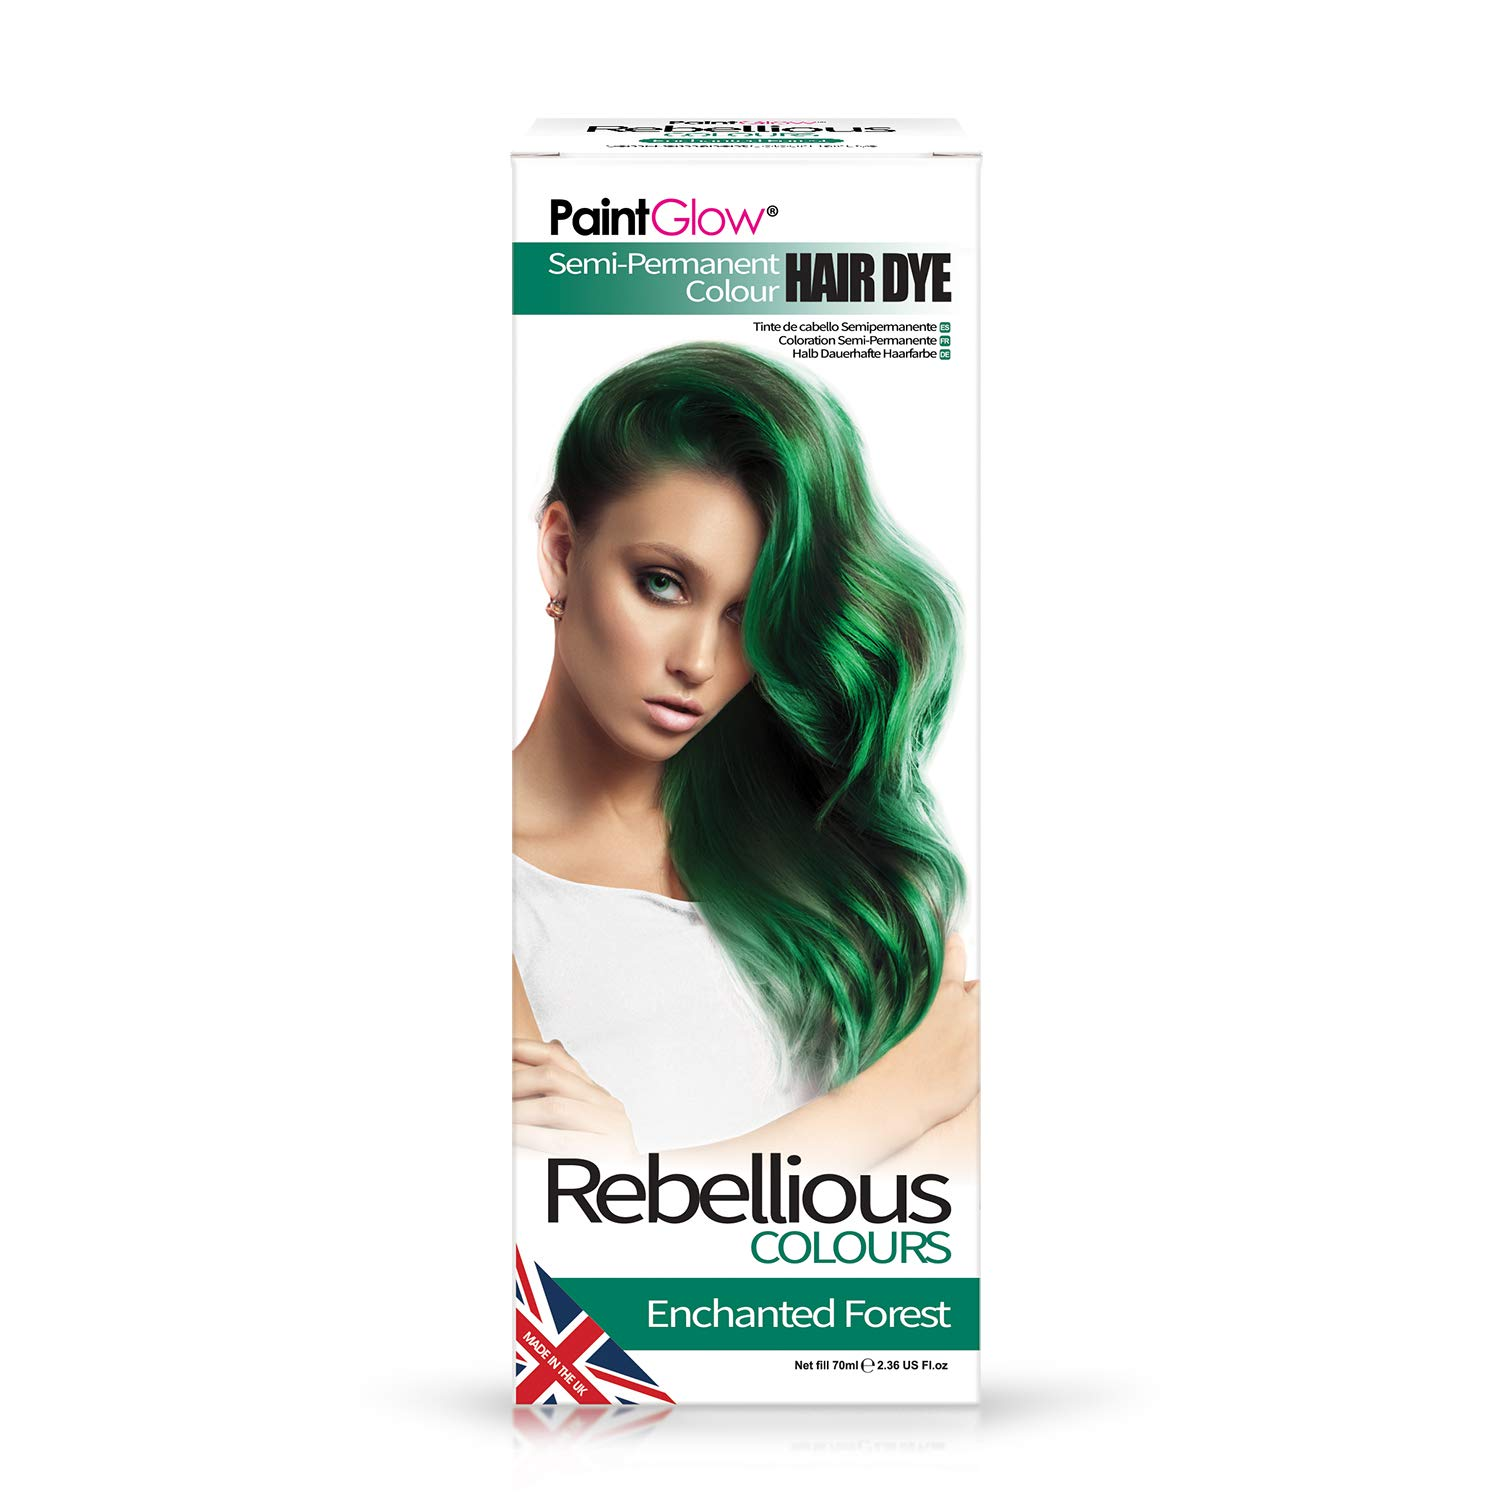 Paint Glow Rebellious Colours Semi-Permanent Conditioning Hair Dye 70ml-Purple Fury